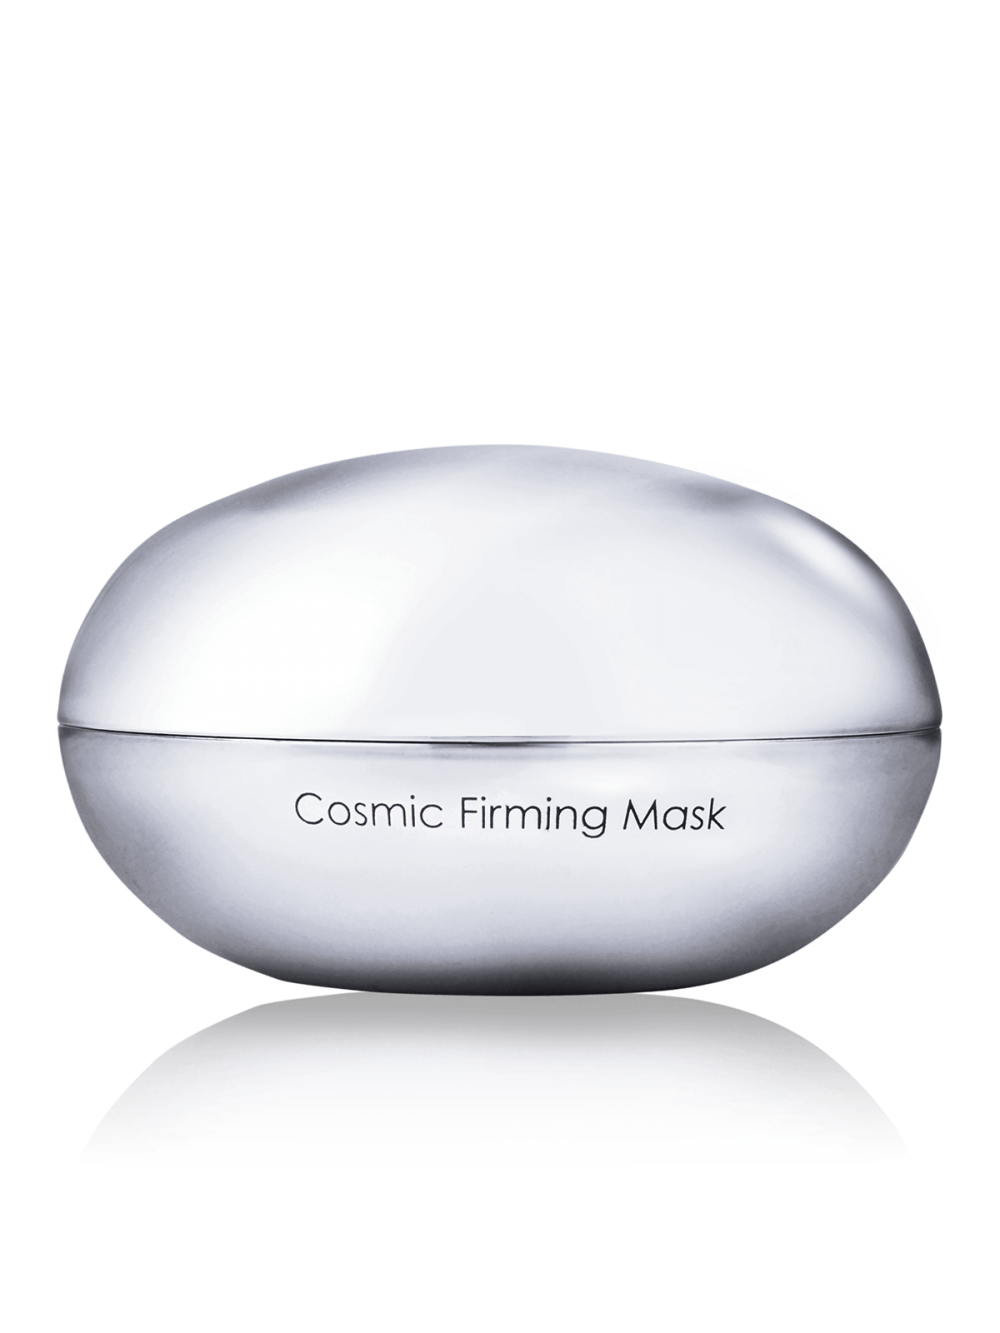 Cosmic Firming Mask back